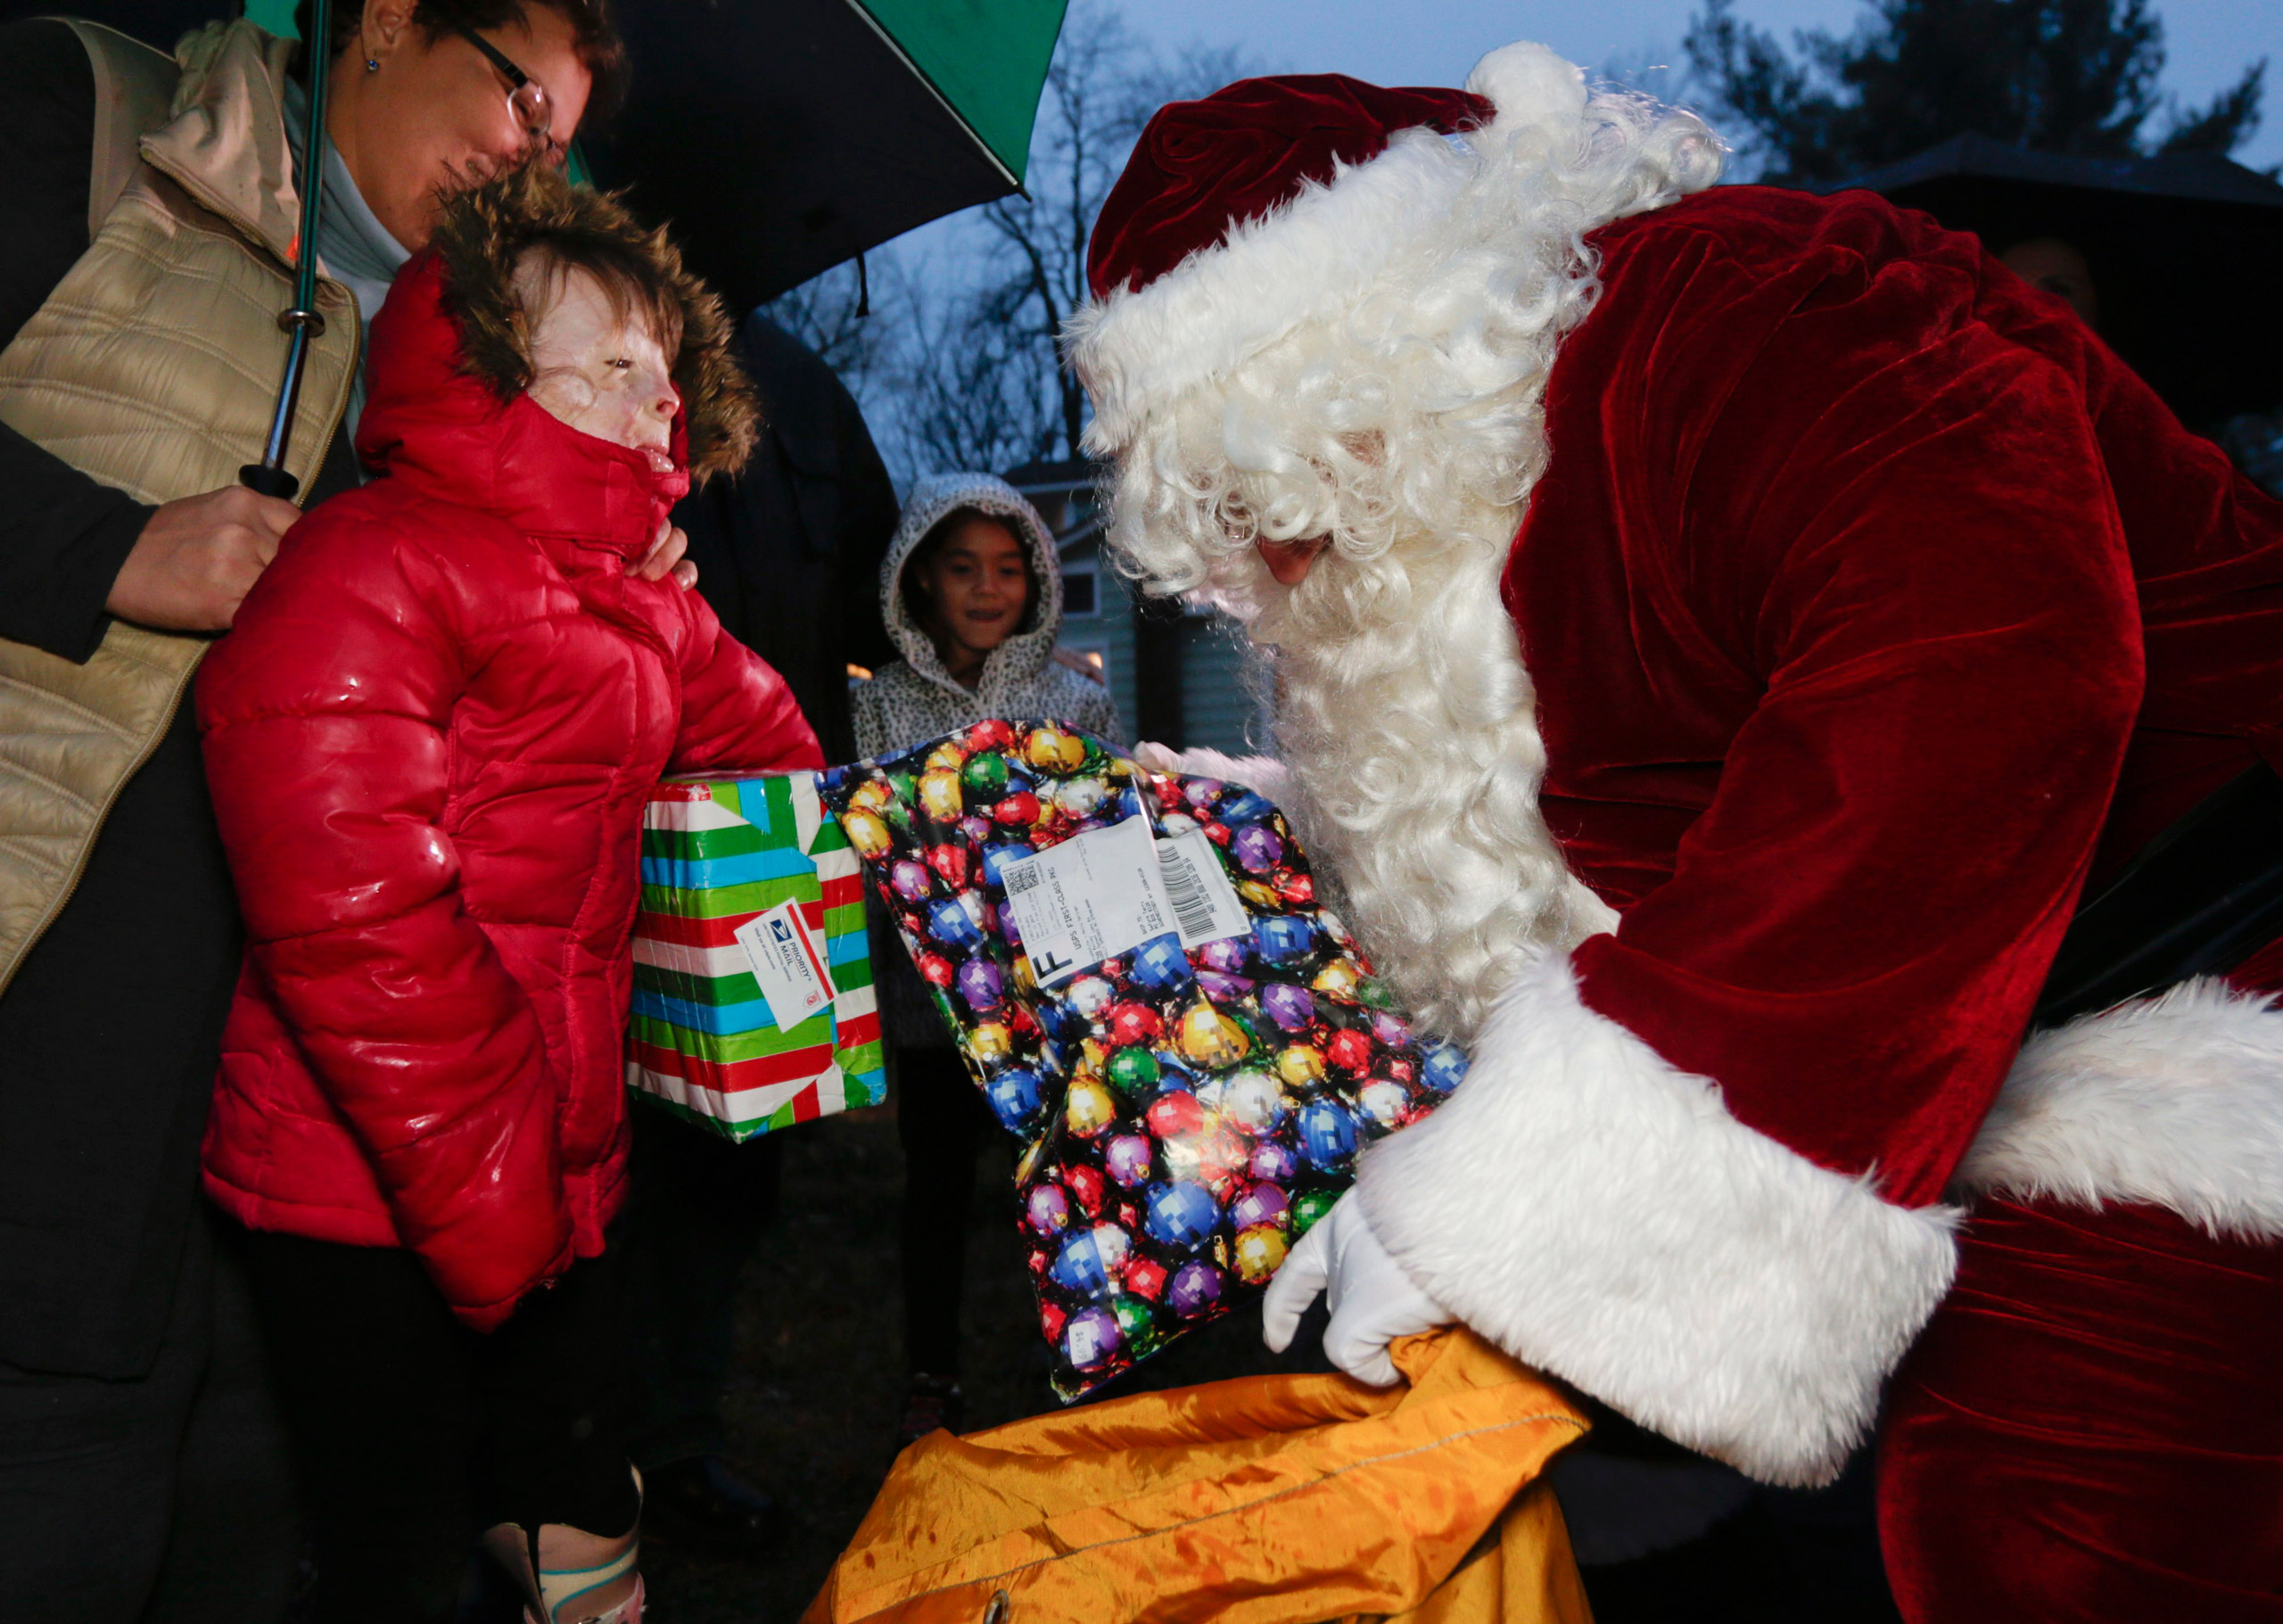 Safyre Terry receives packages from Santa Claus in Rotterdam, N.Y., on Dec. 17, 2015.